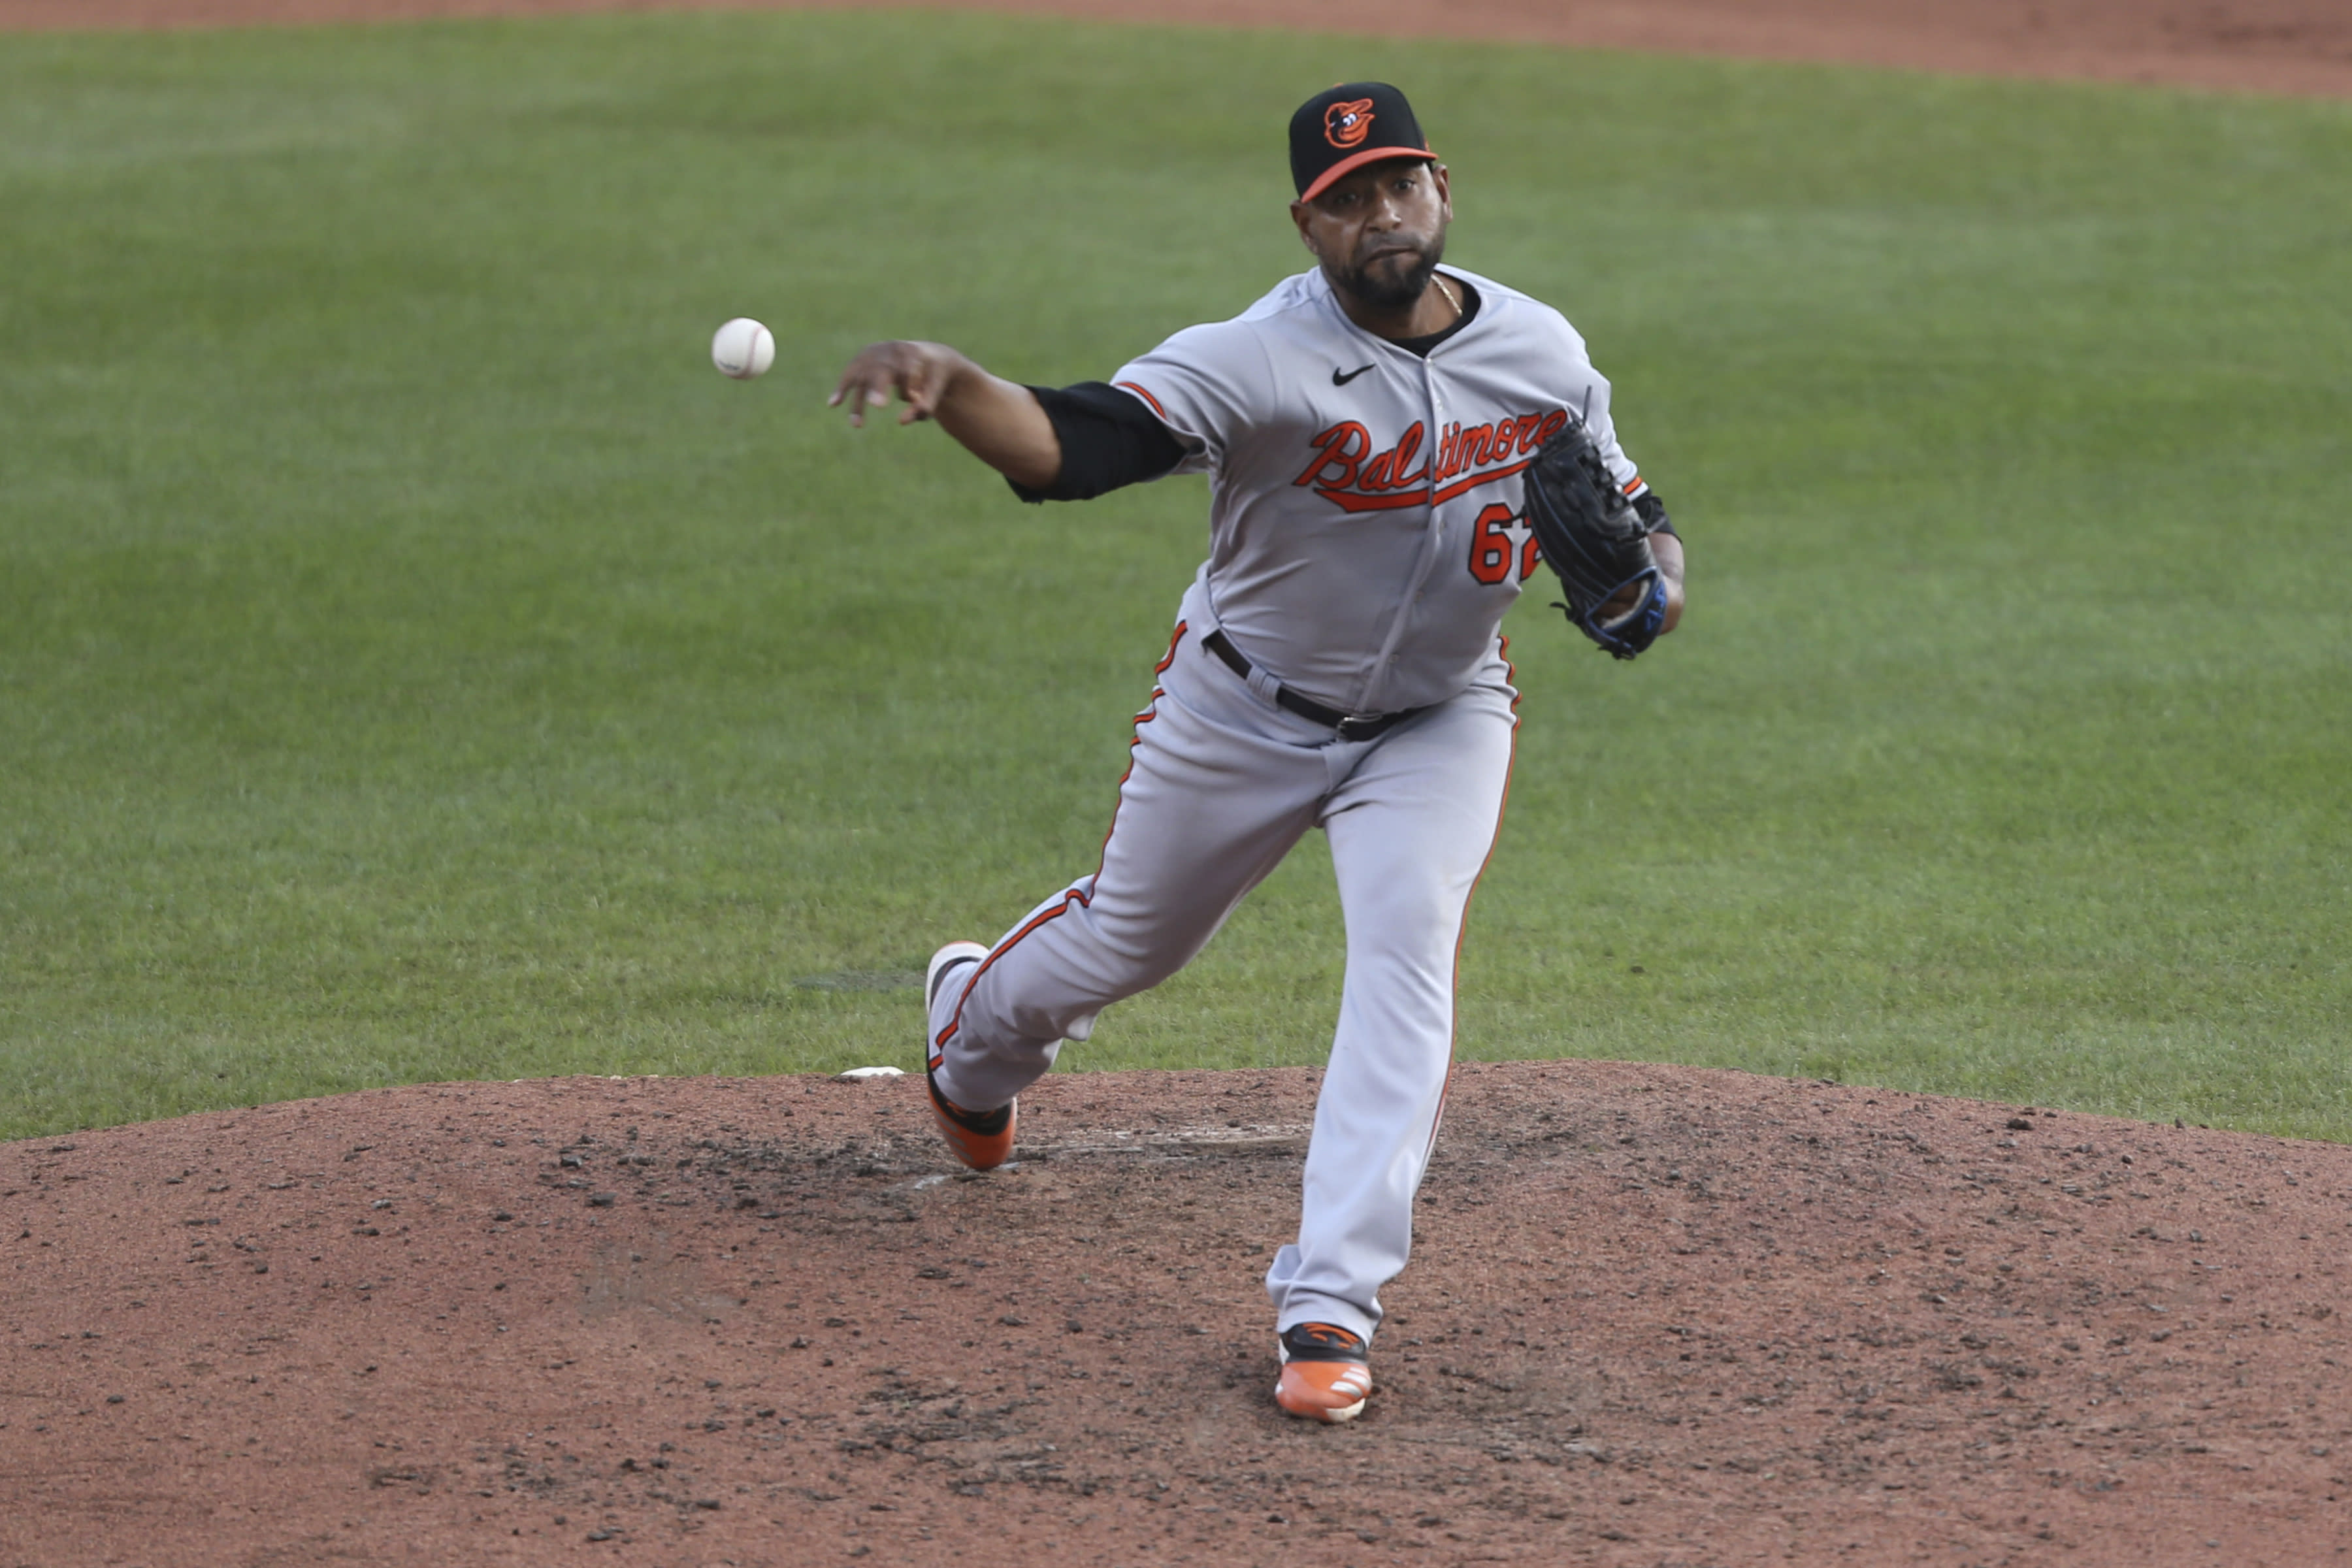 Baltimore Orioles pitcher Casar Valdez delivers to Toronto Blue Jays Cavan Biggio during the ninth inning of a baseball game, Sunday, Sept. 27, 2020, in Buffalo, N.Y. (AP Photo/Jeffrey T. Barnes)